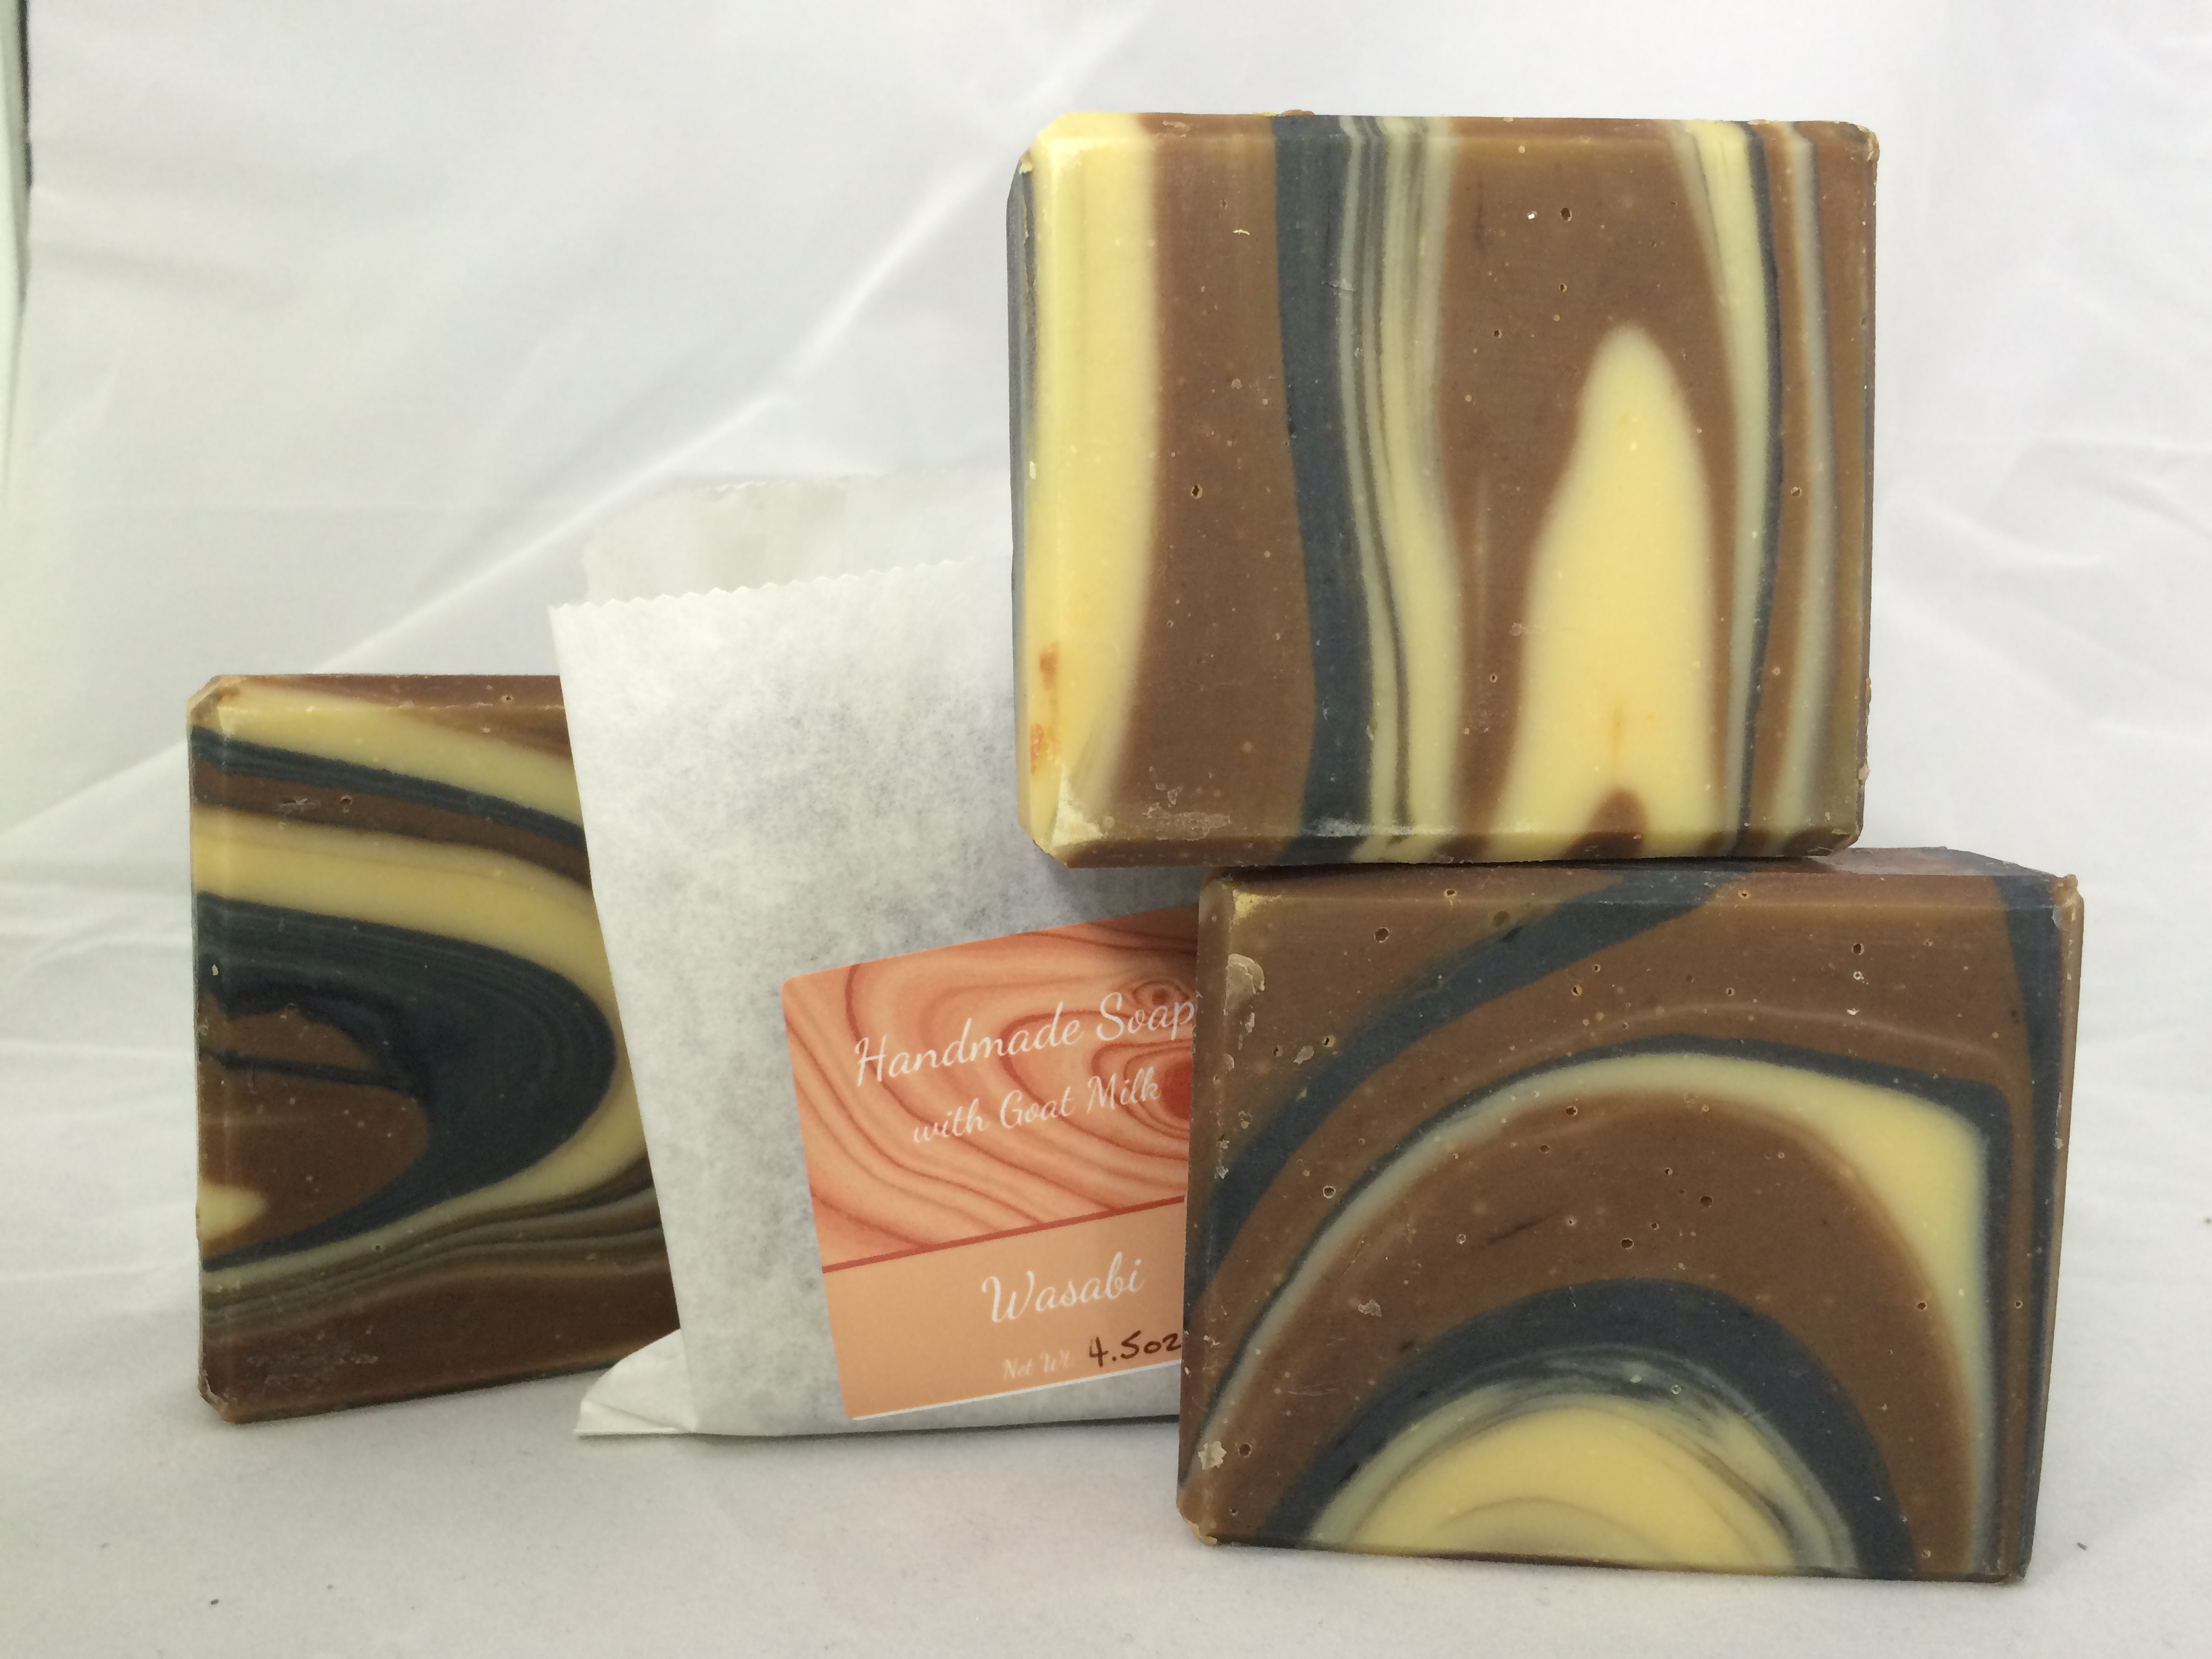 handmade soap with wood grain pattern and wasabi fragrance